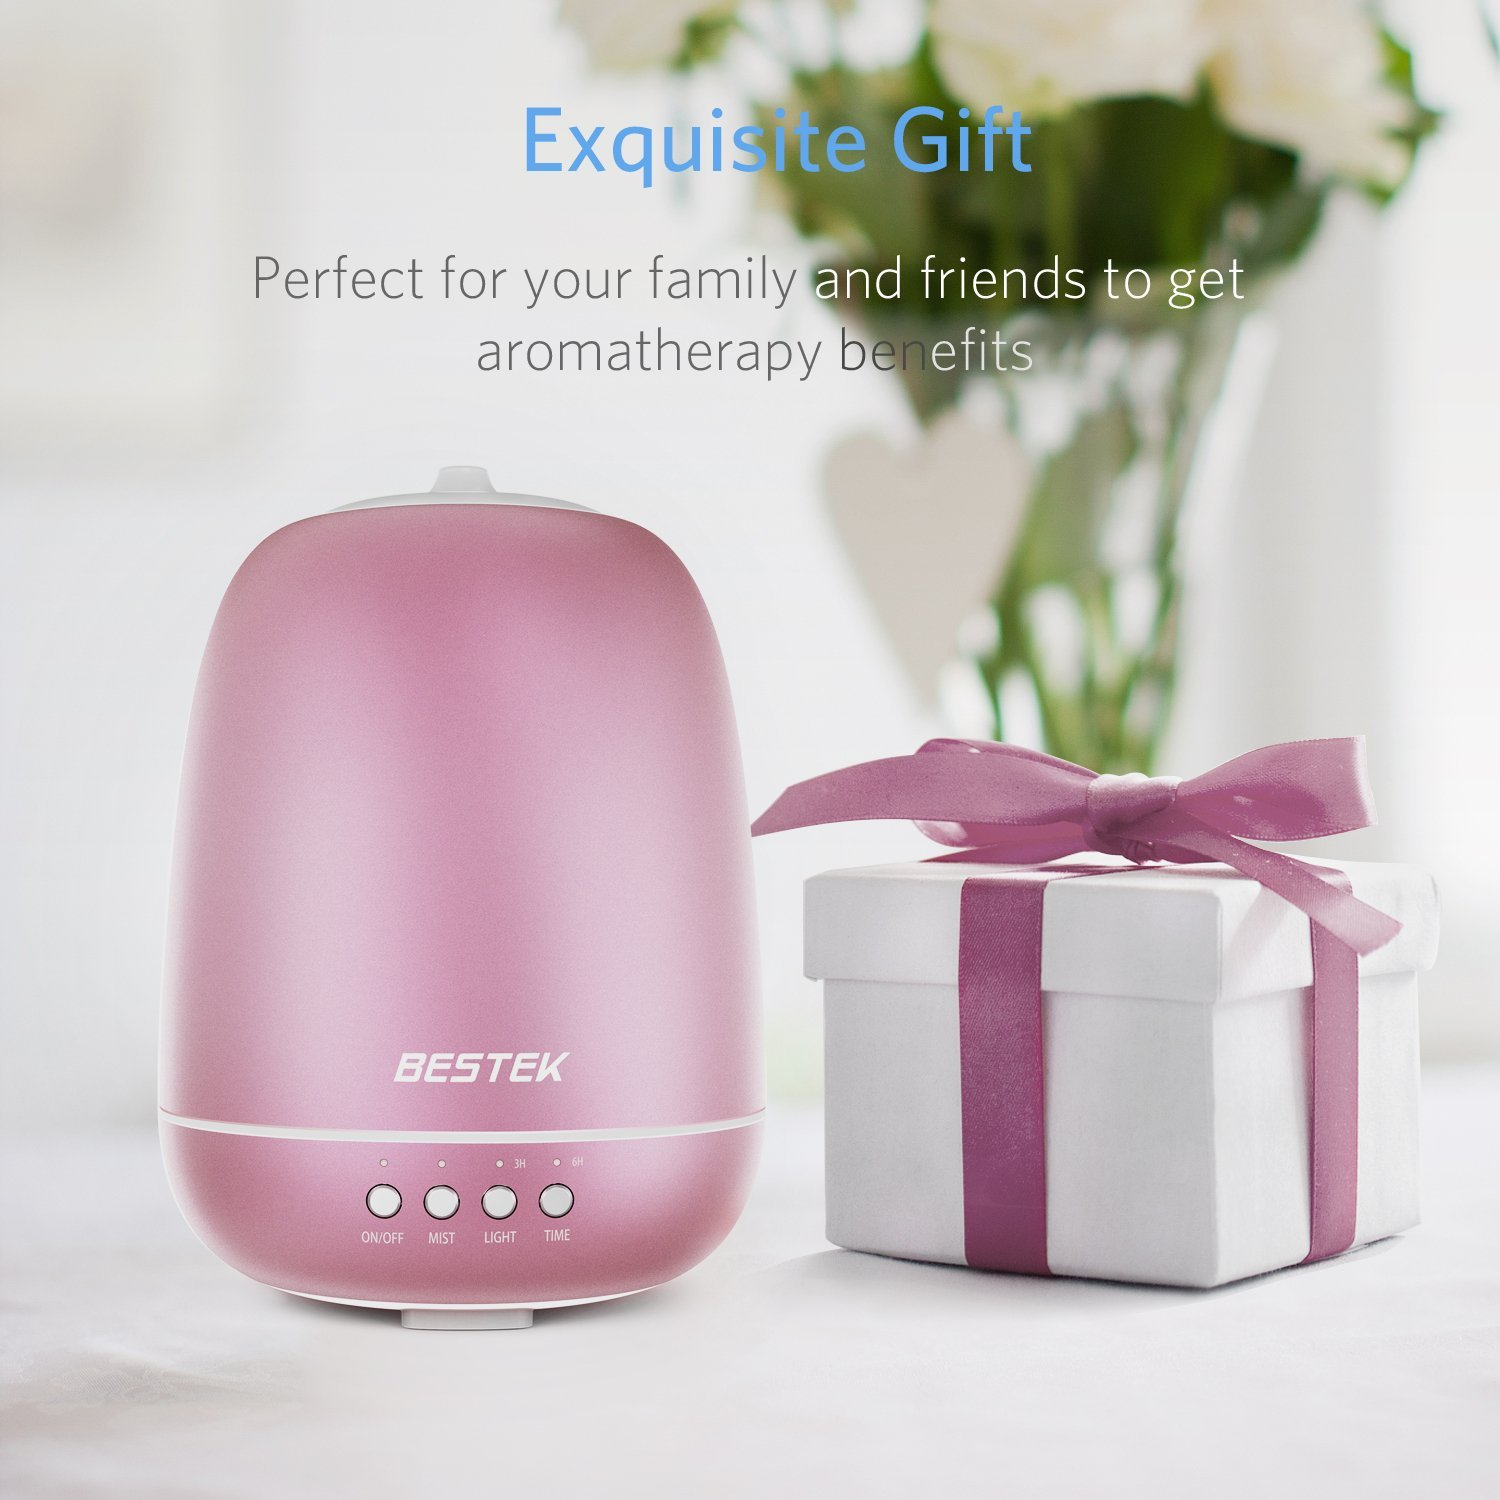 BESTEK 350ml Aromatherapy Essential Oil Diffuser Ultrasonic Cool Mist Humidifier with 360 ° Rotating Spraying and Changing Colored LED Lights, Waterless Auto Shut-off and Adjustable Mist Mode